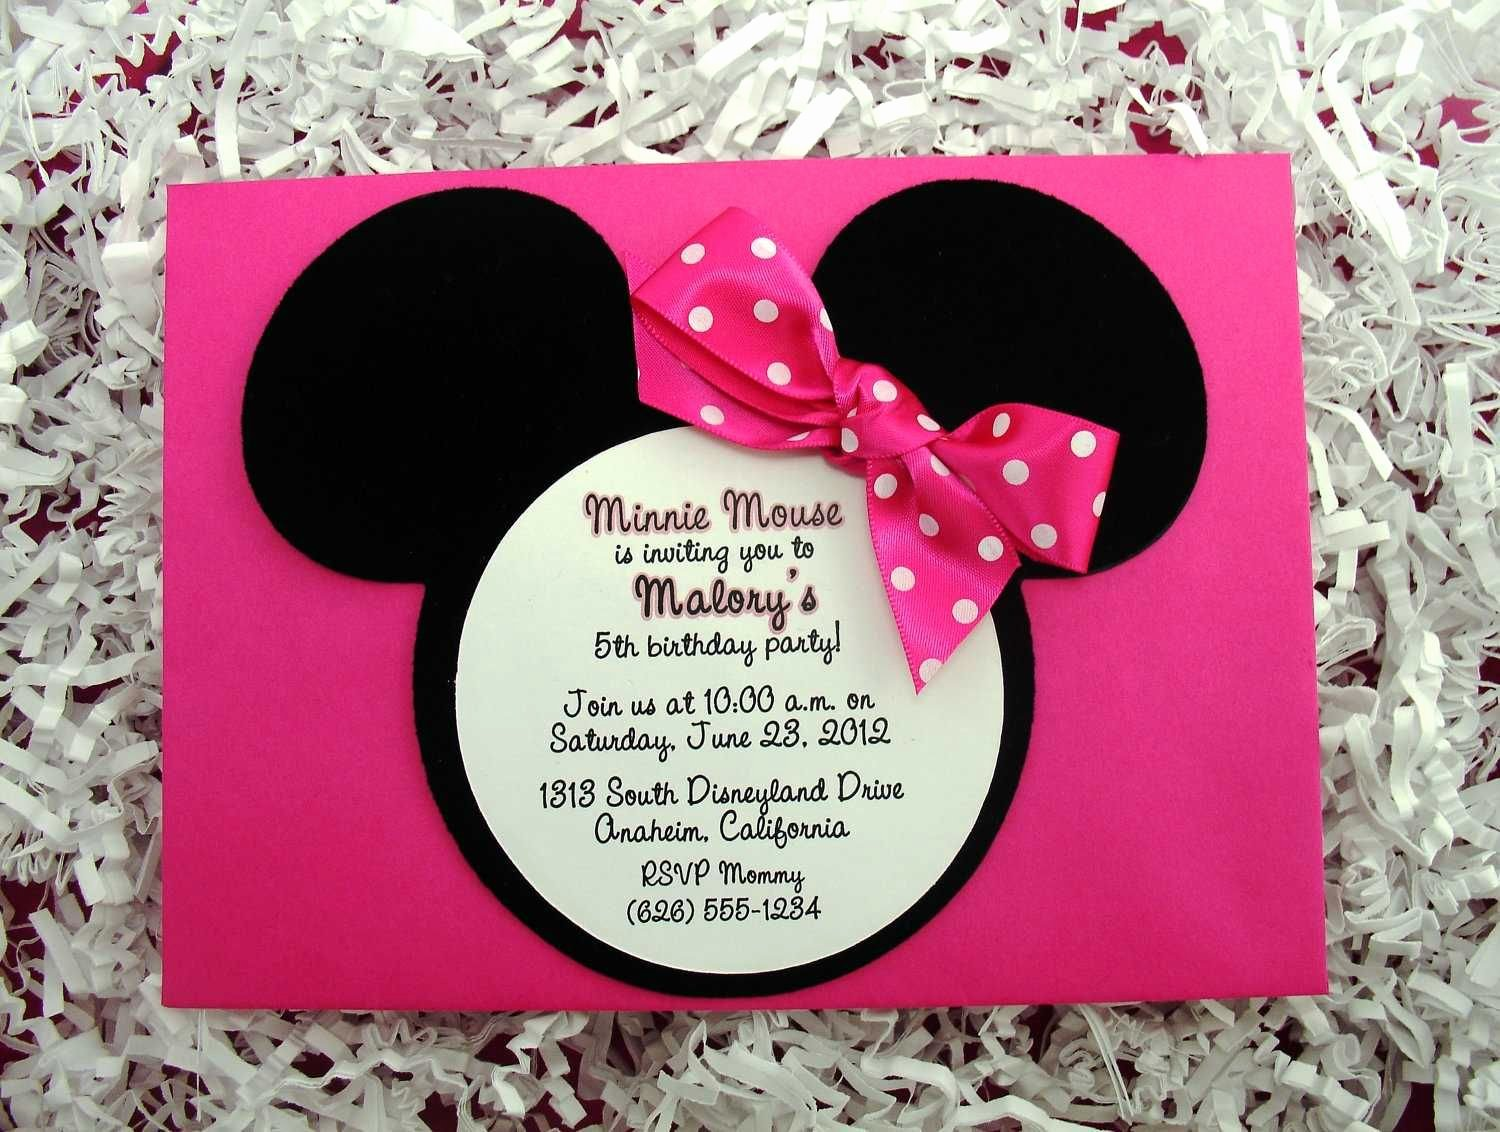 Free Minnie Mouse Invitations Personalized Fresh Very Cute Invitation Idea for A Little Girl S Minne themed